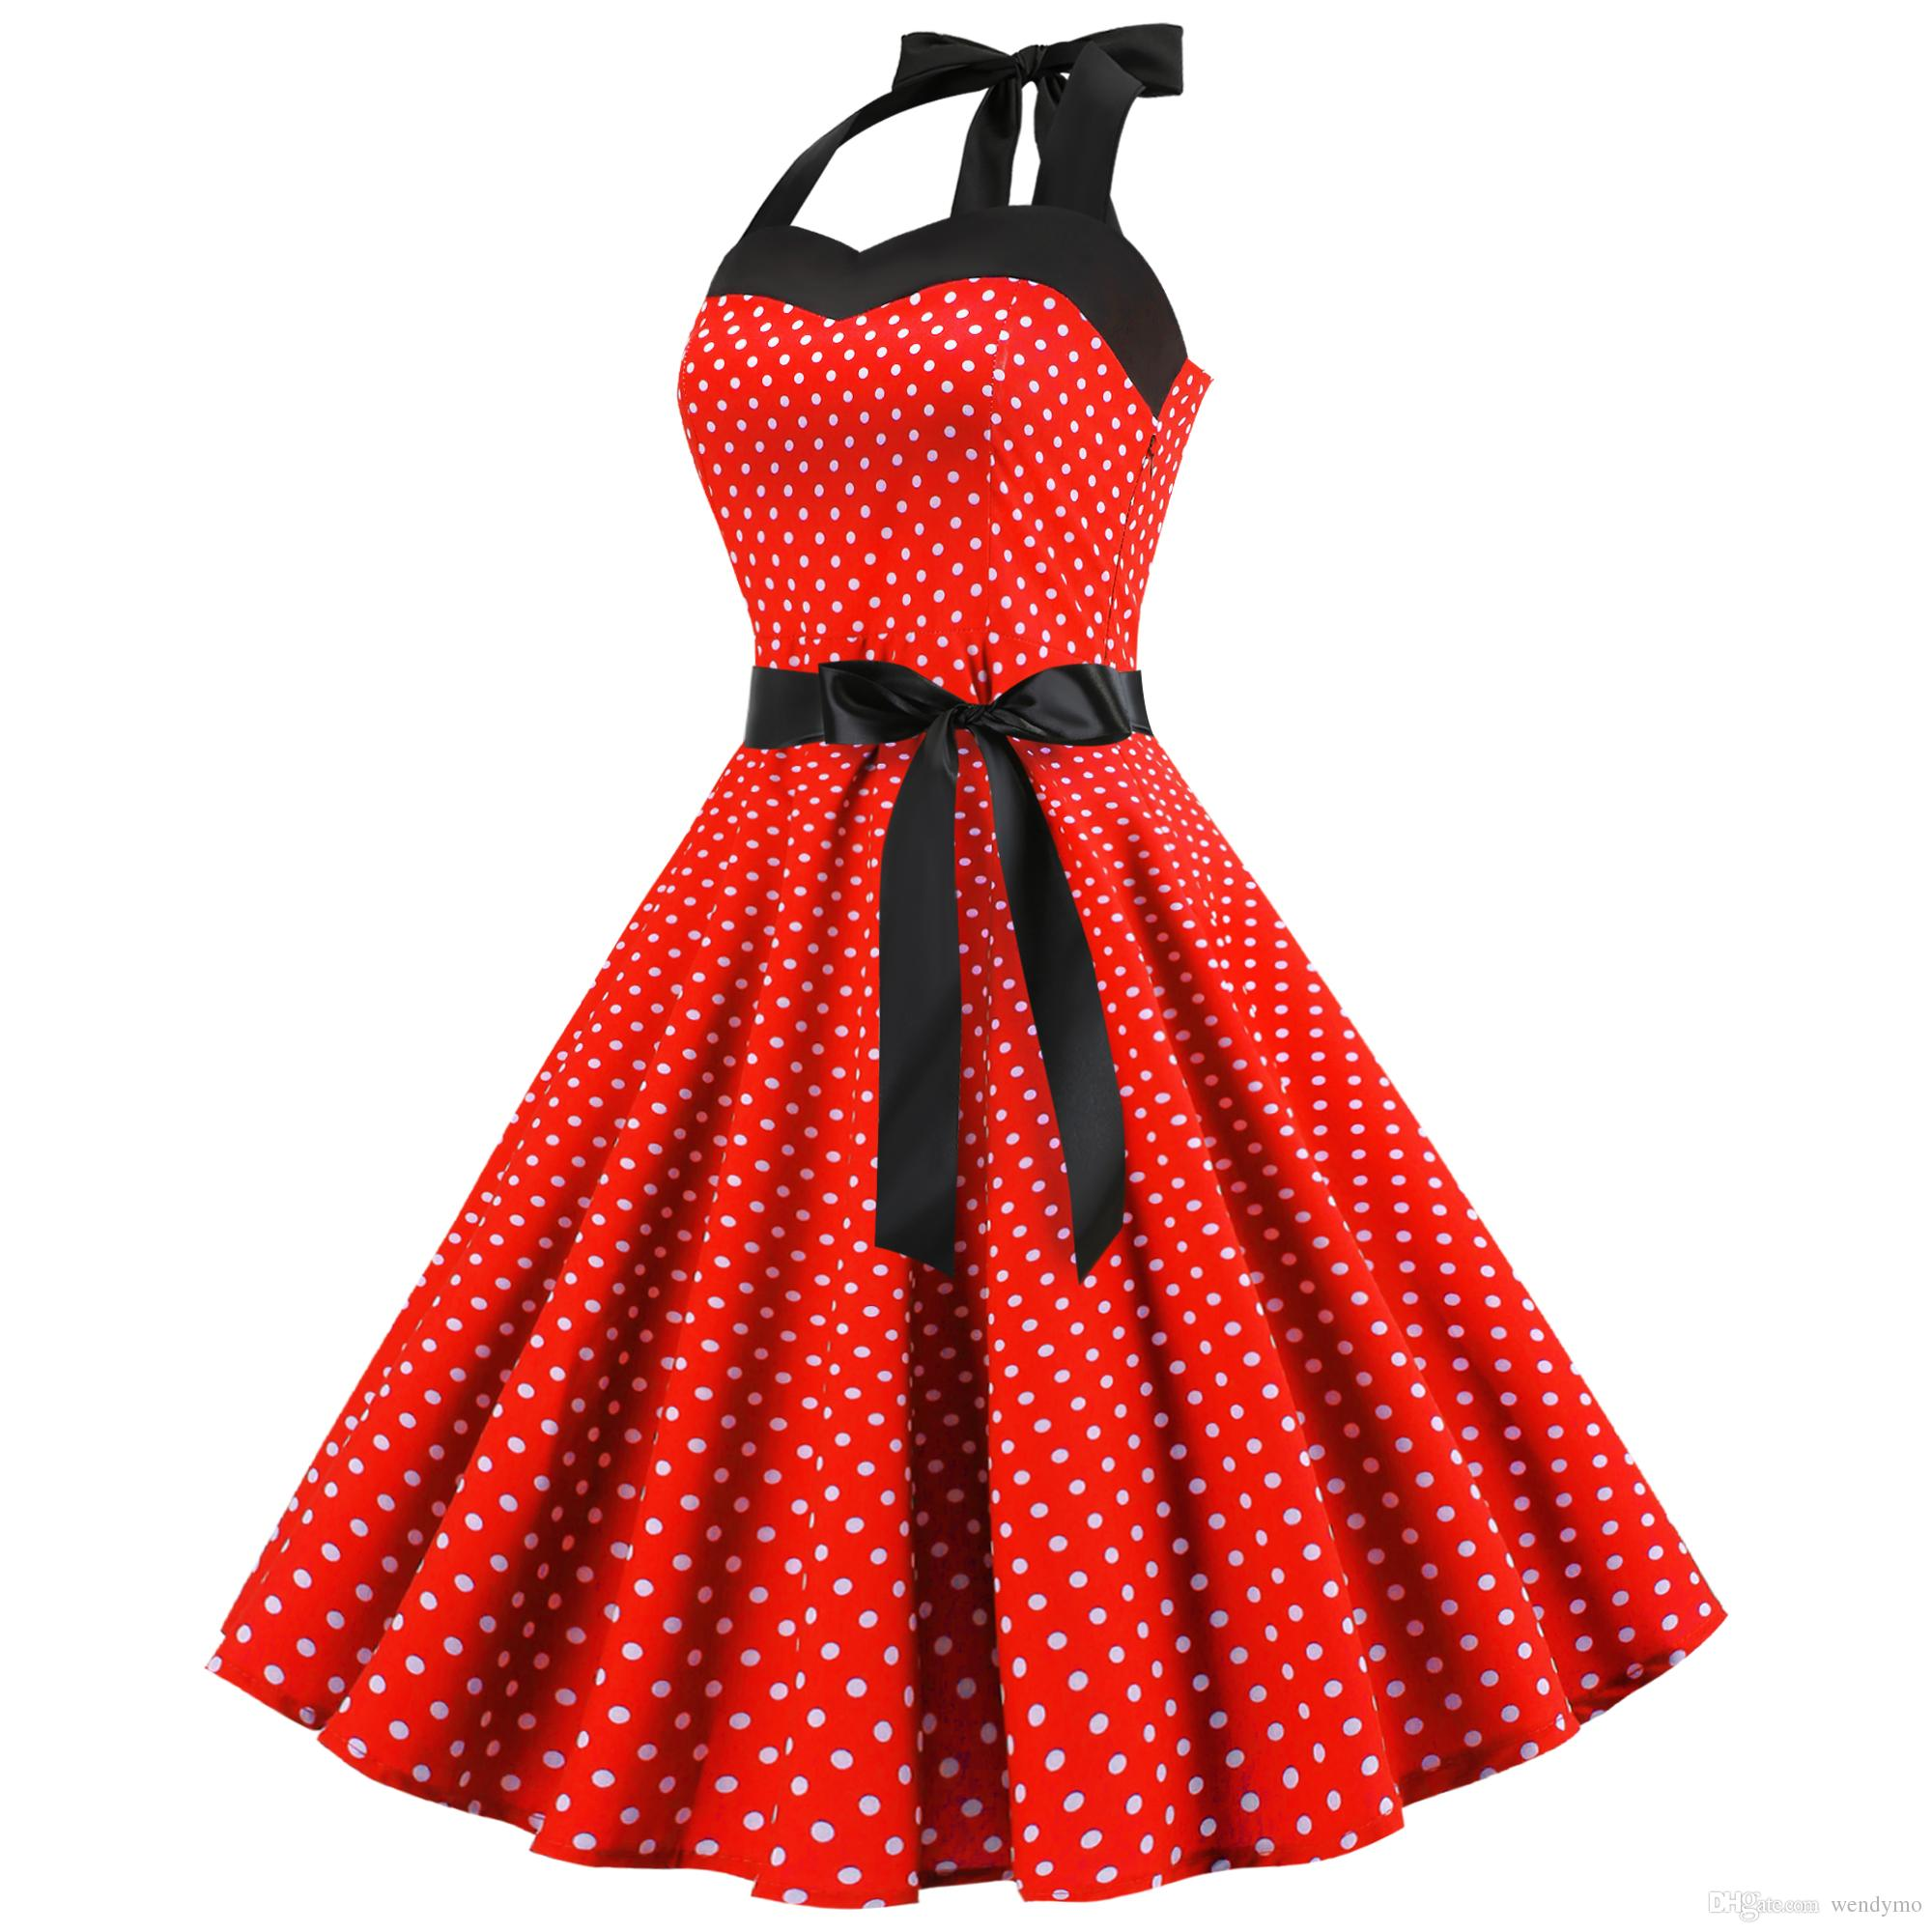 8e0138f859a9 2019 Sexy Halter Party Dress Women Retro Dress Polka Dot Hepburn Vintage  Pin Up Rockabilly Dresses Robe Plus Size Midi Jurken From Wendymo, $60.21 |  DHgate.